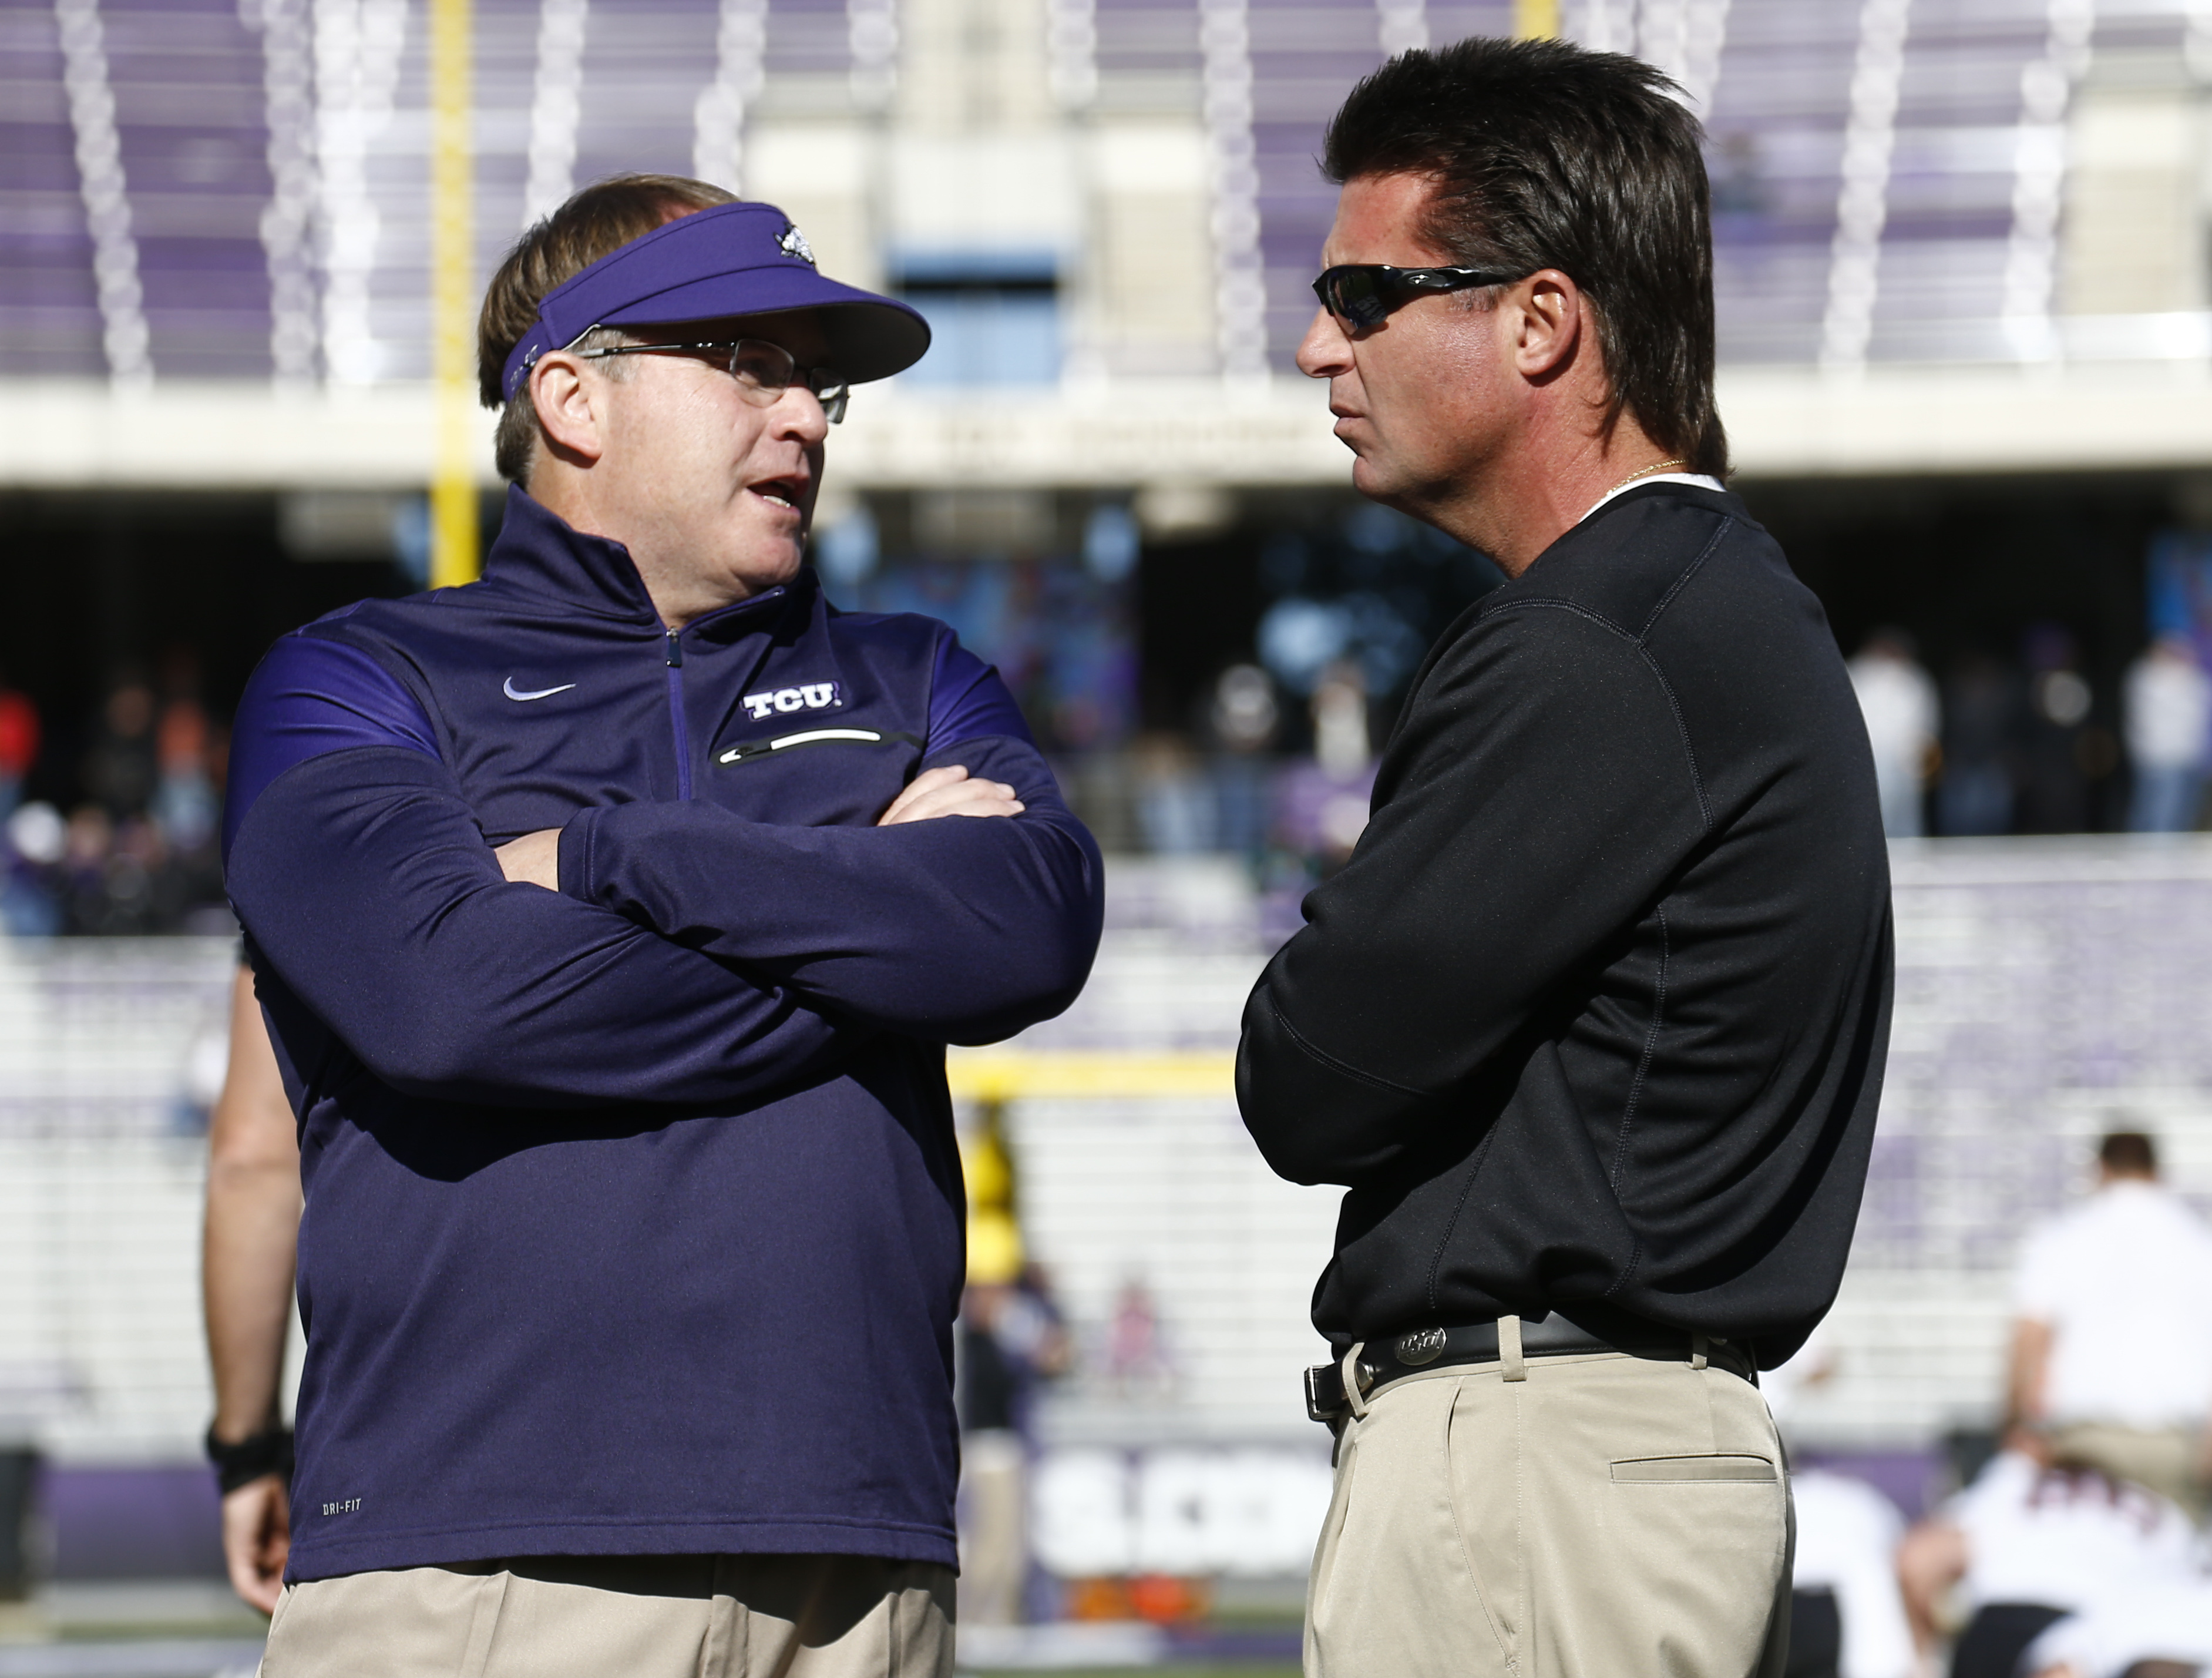 TCU head coach Gary Patterson and Oklahoma State head coach Mike Gundy talk before an NCAA college football game, Saturday, Nov. 19, 2016, in Fort Worth, Texas. (AP Photo/Jim Cowsert)